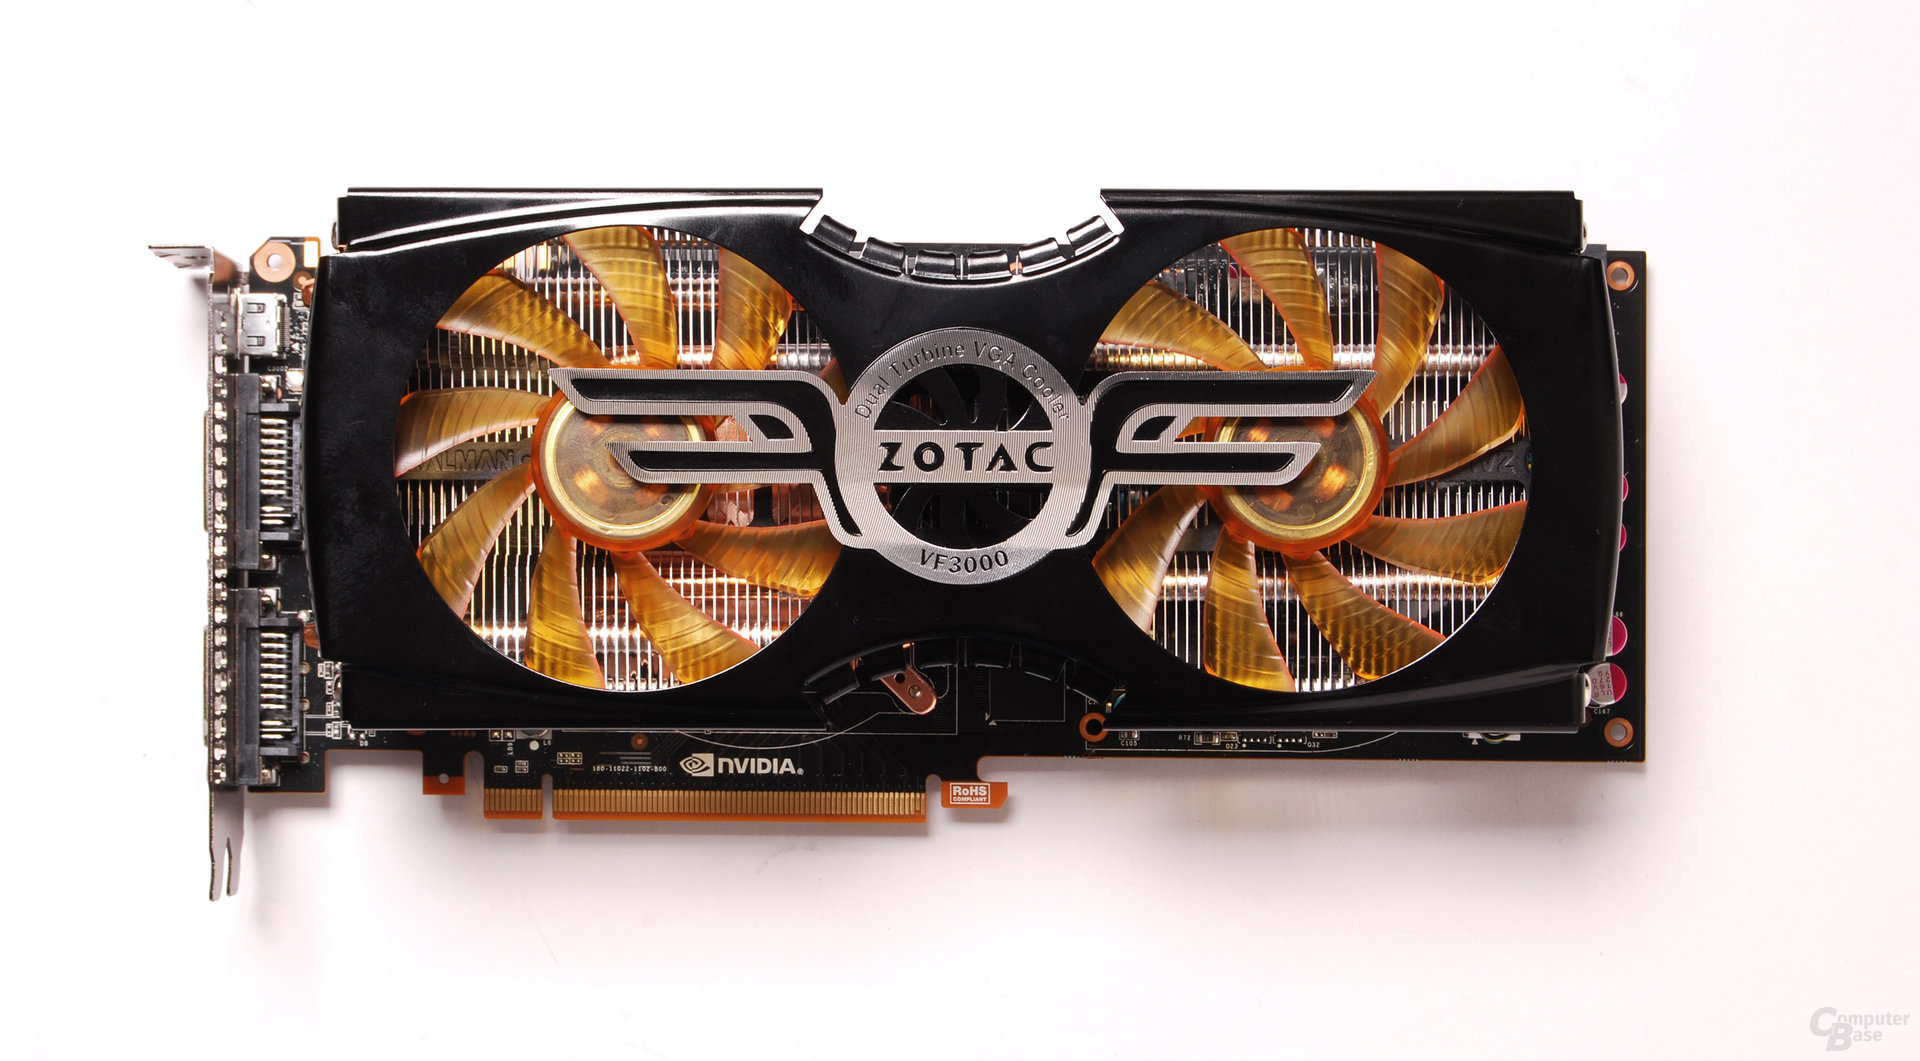 Zotac GeForce GTX 480 AMP! Edition